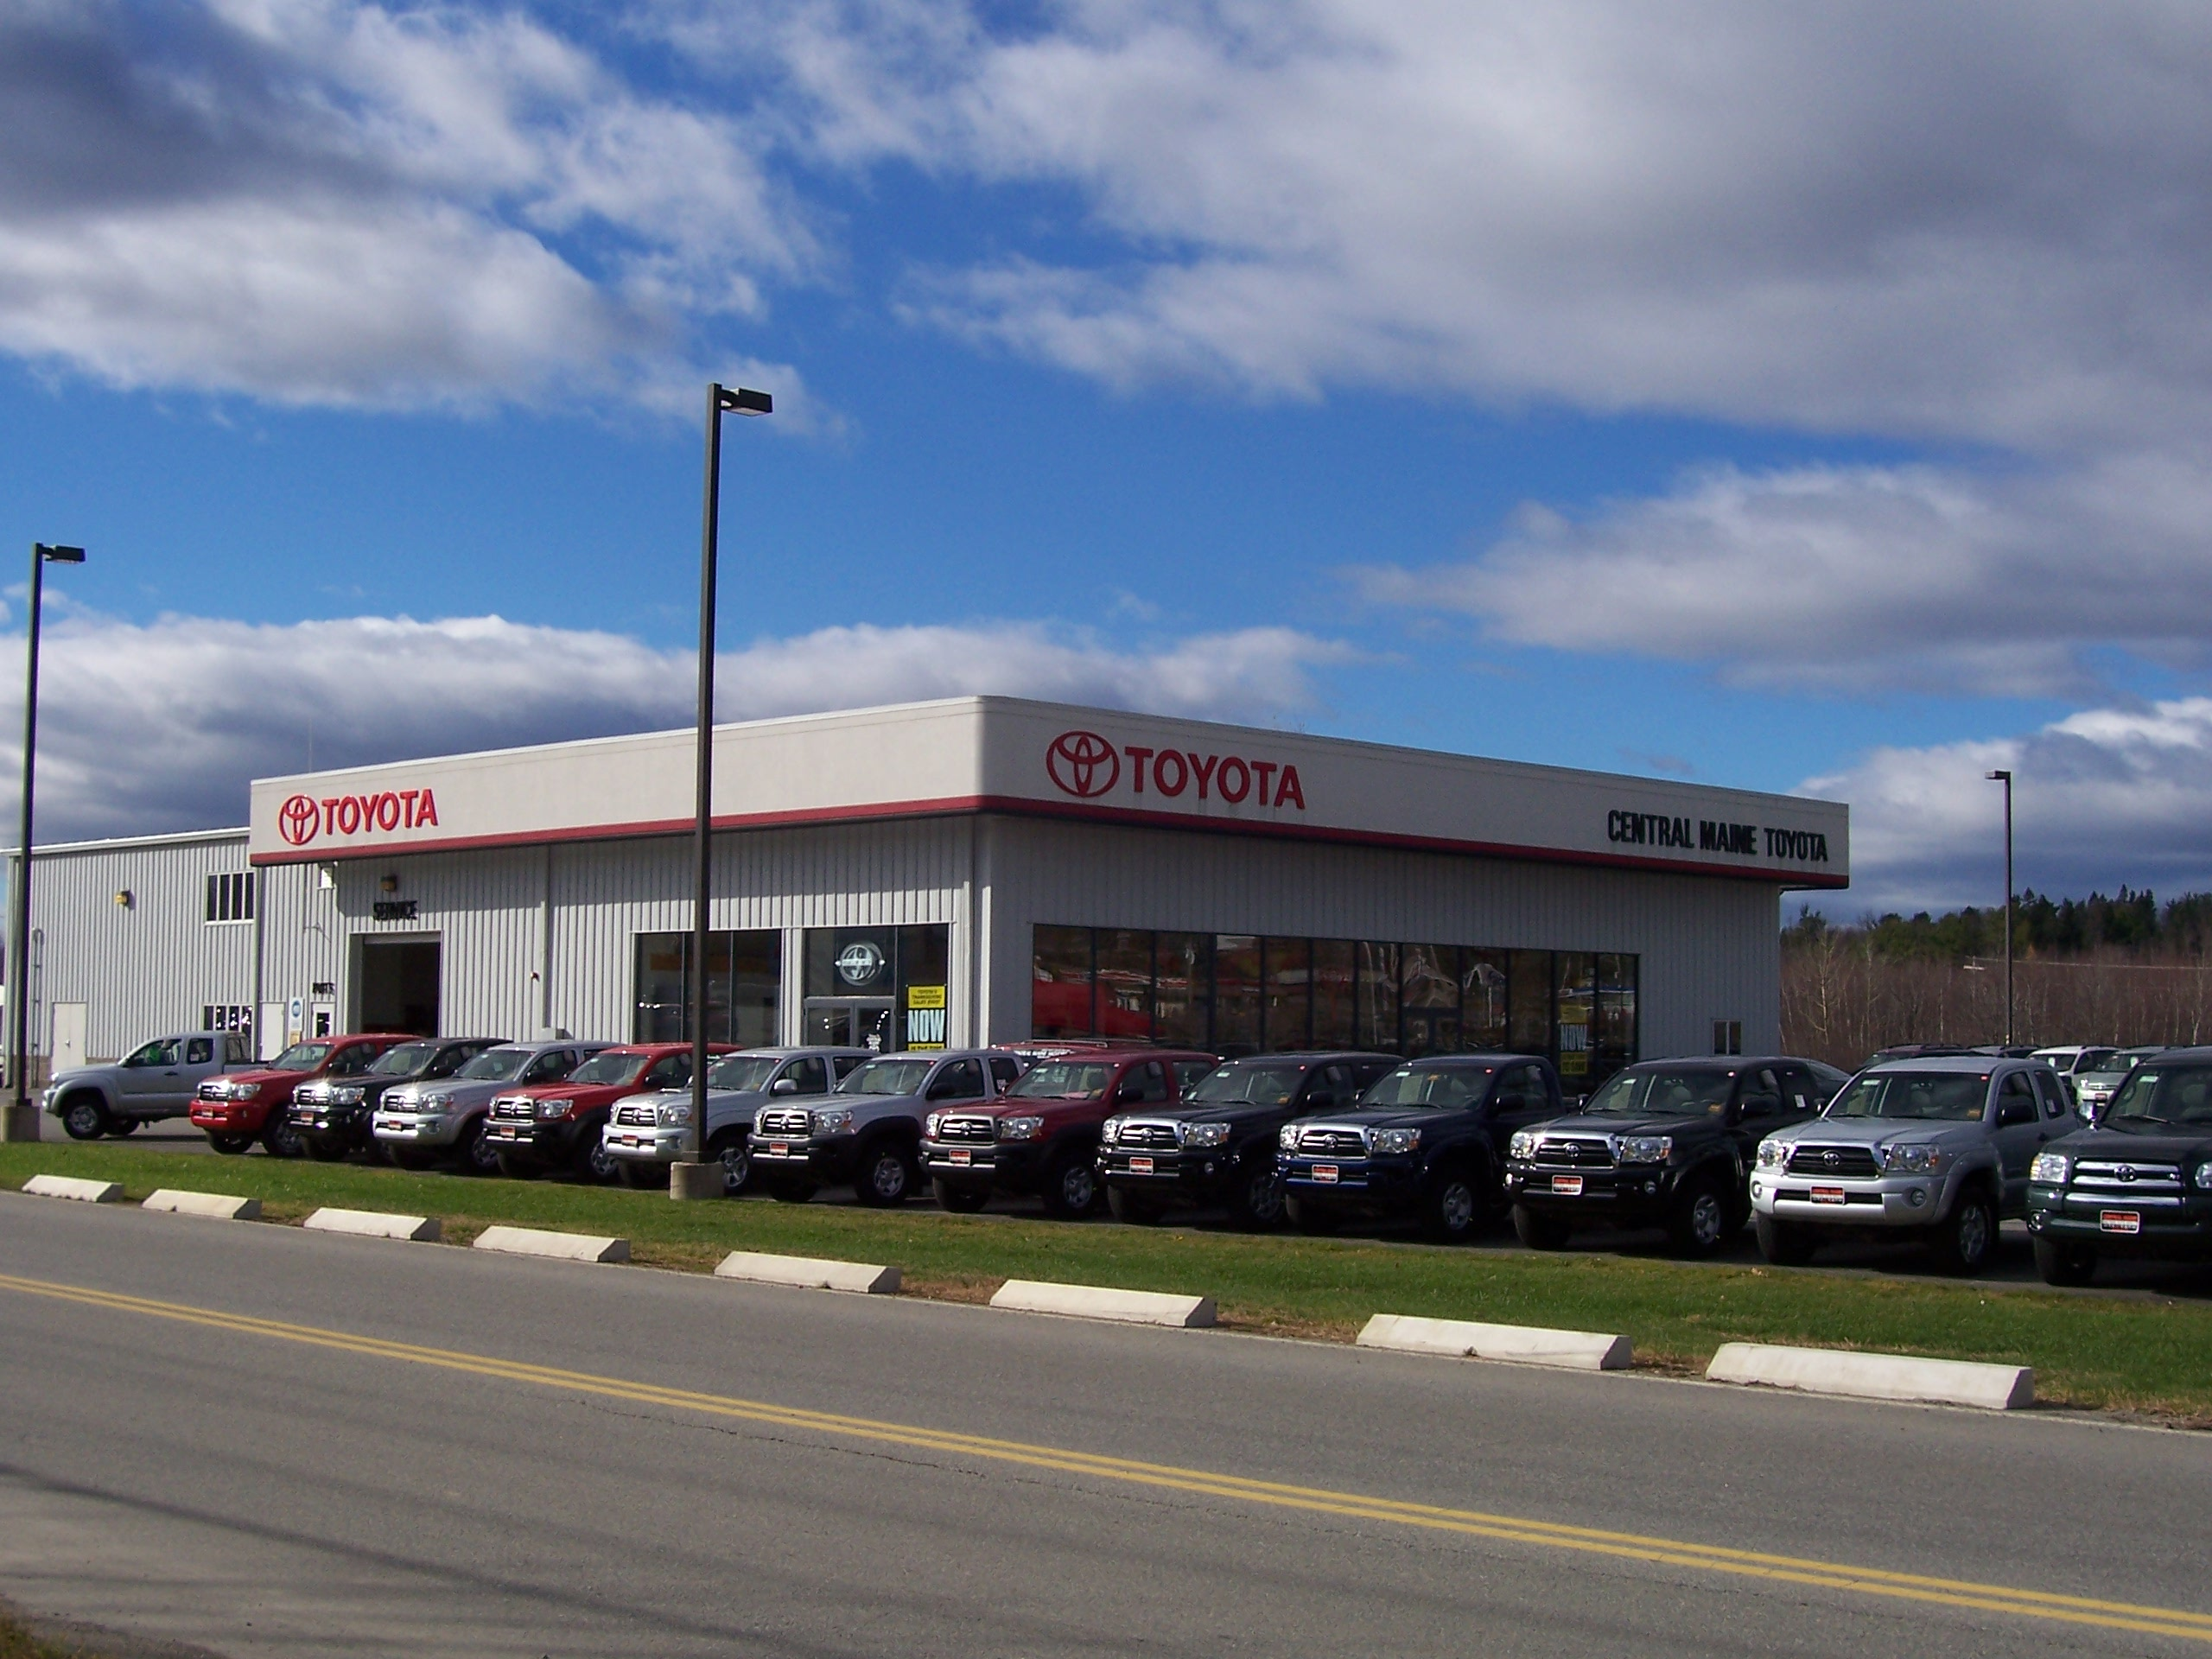 Toyota Dealer Near Me >> Central Maine Toyota 15 Airport Rd Waterville Me 04901 Yp Com